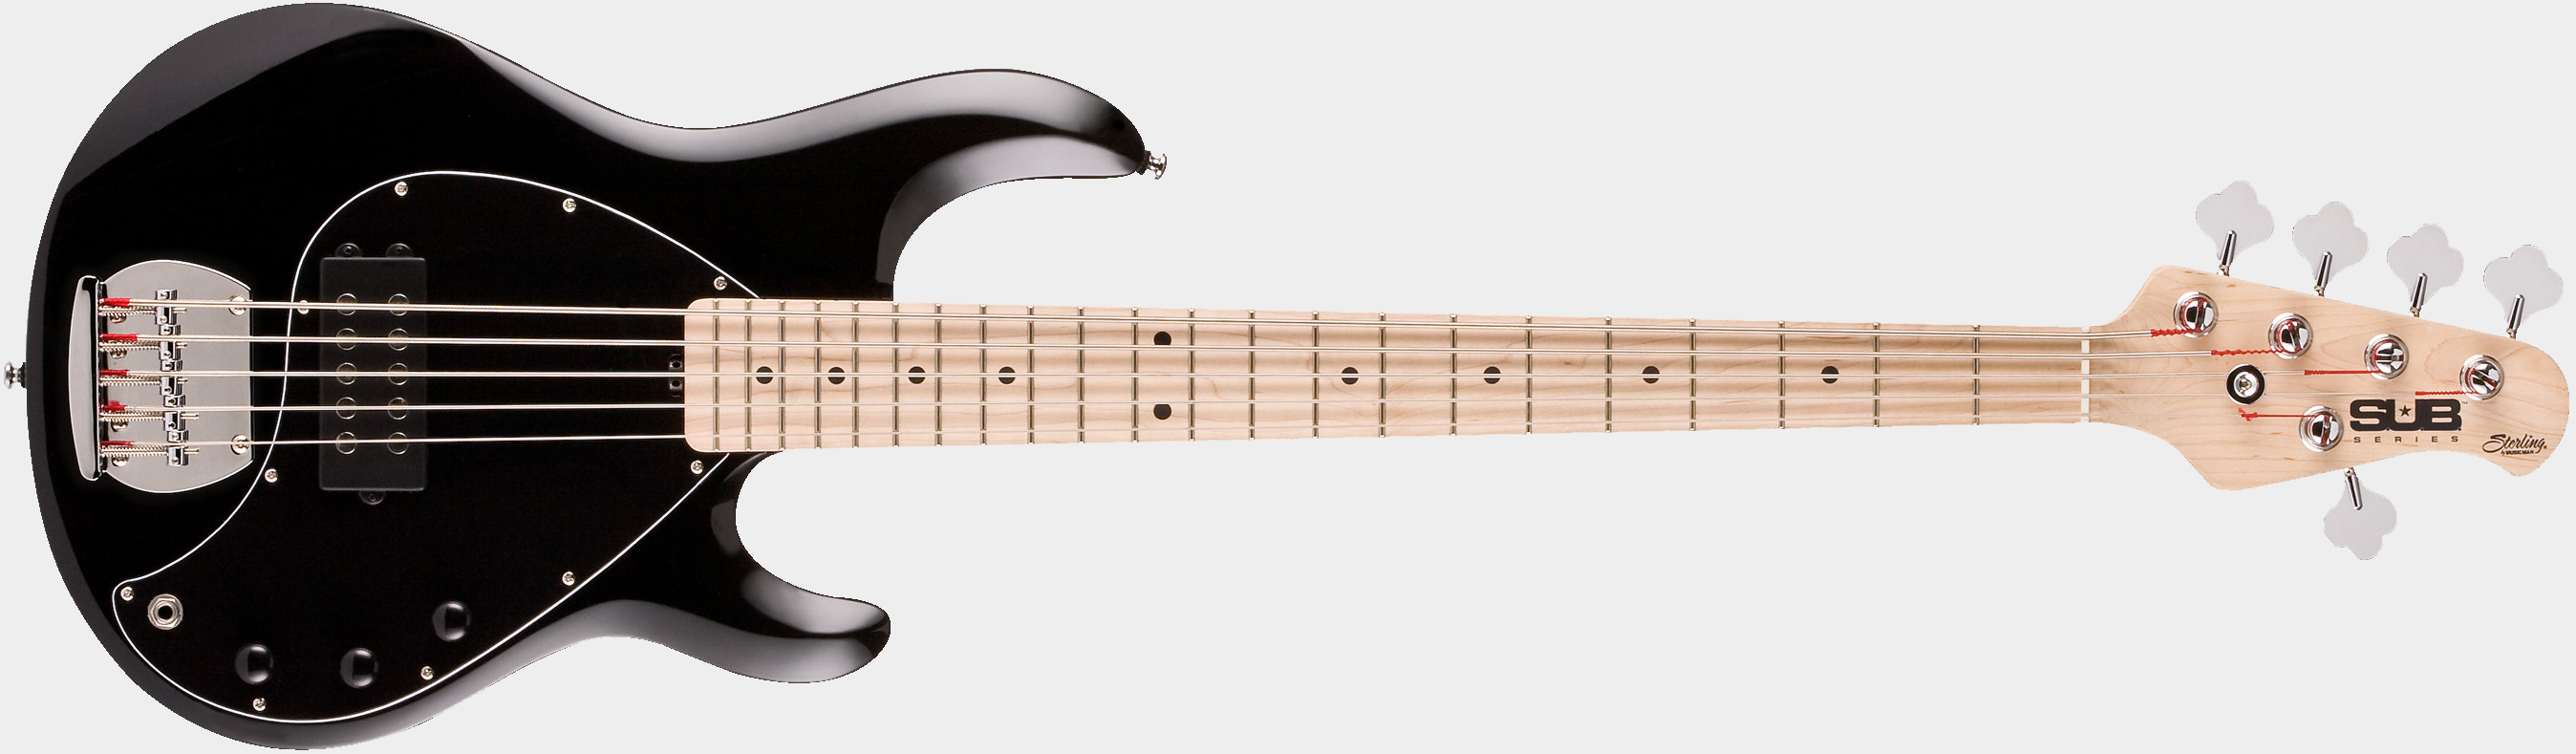 STERLING BY MUSIC MAN S.U.B. Ray5 MN Black